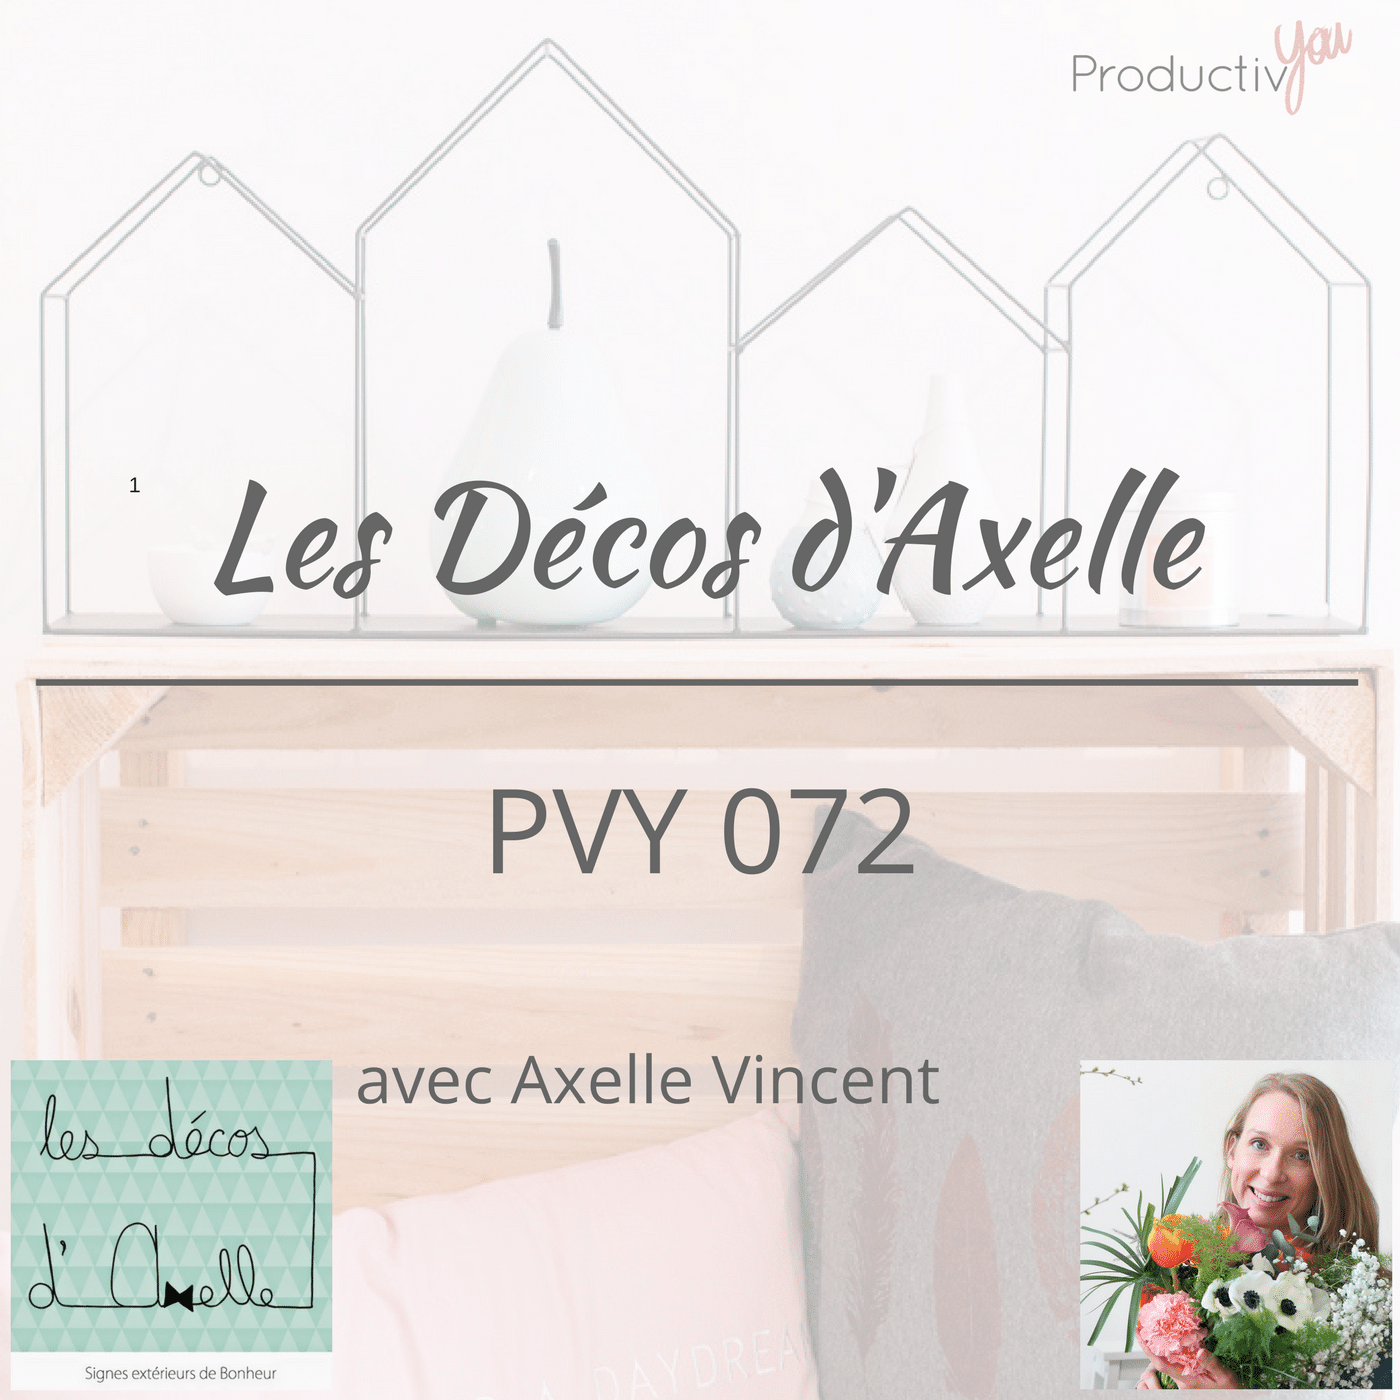 entreprendre avec les d cos d 39 axelle pvy 072 productiv 39 you. Black Bedroom Furniture Sets. Home Design Ideas